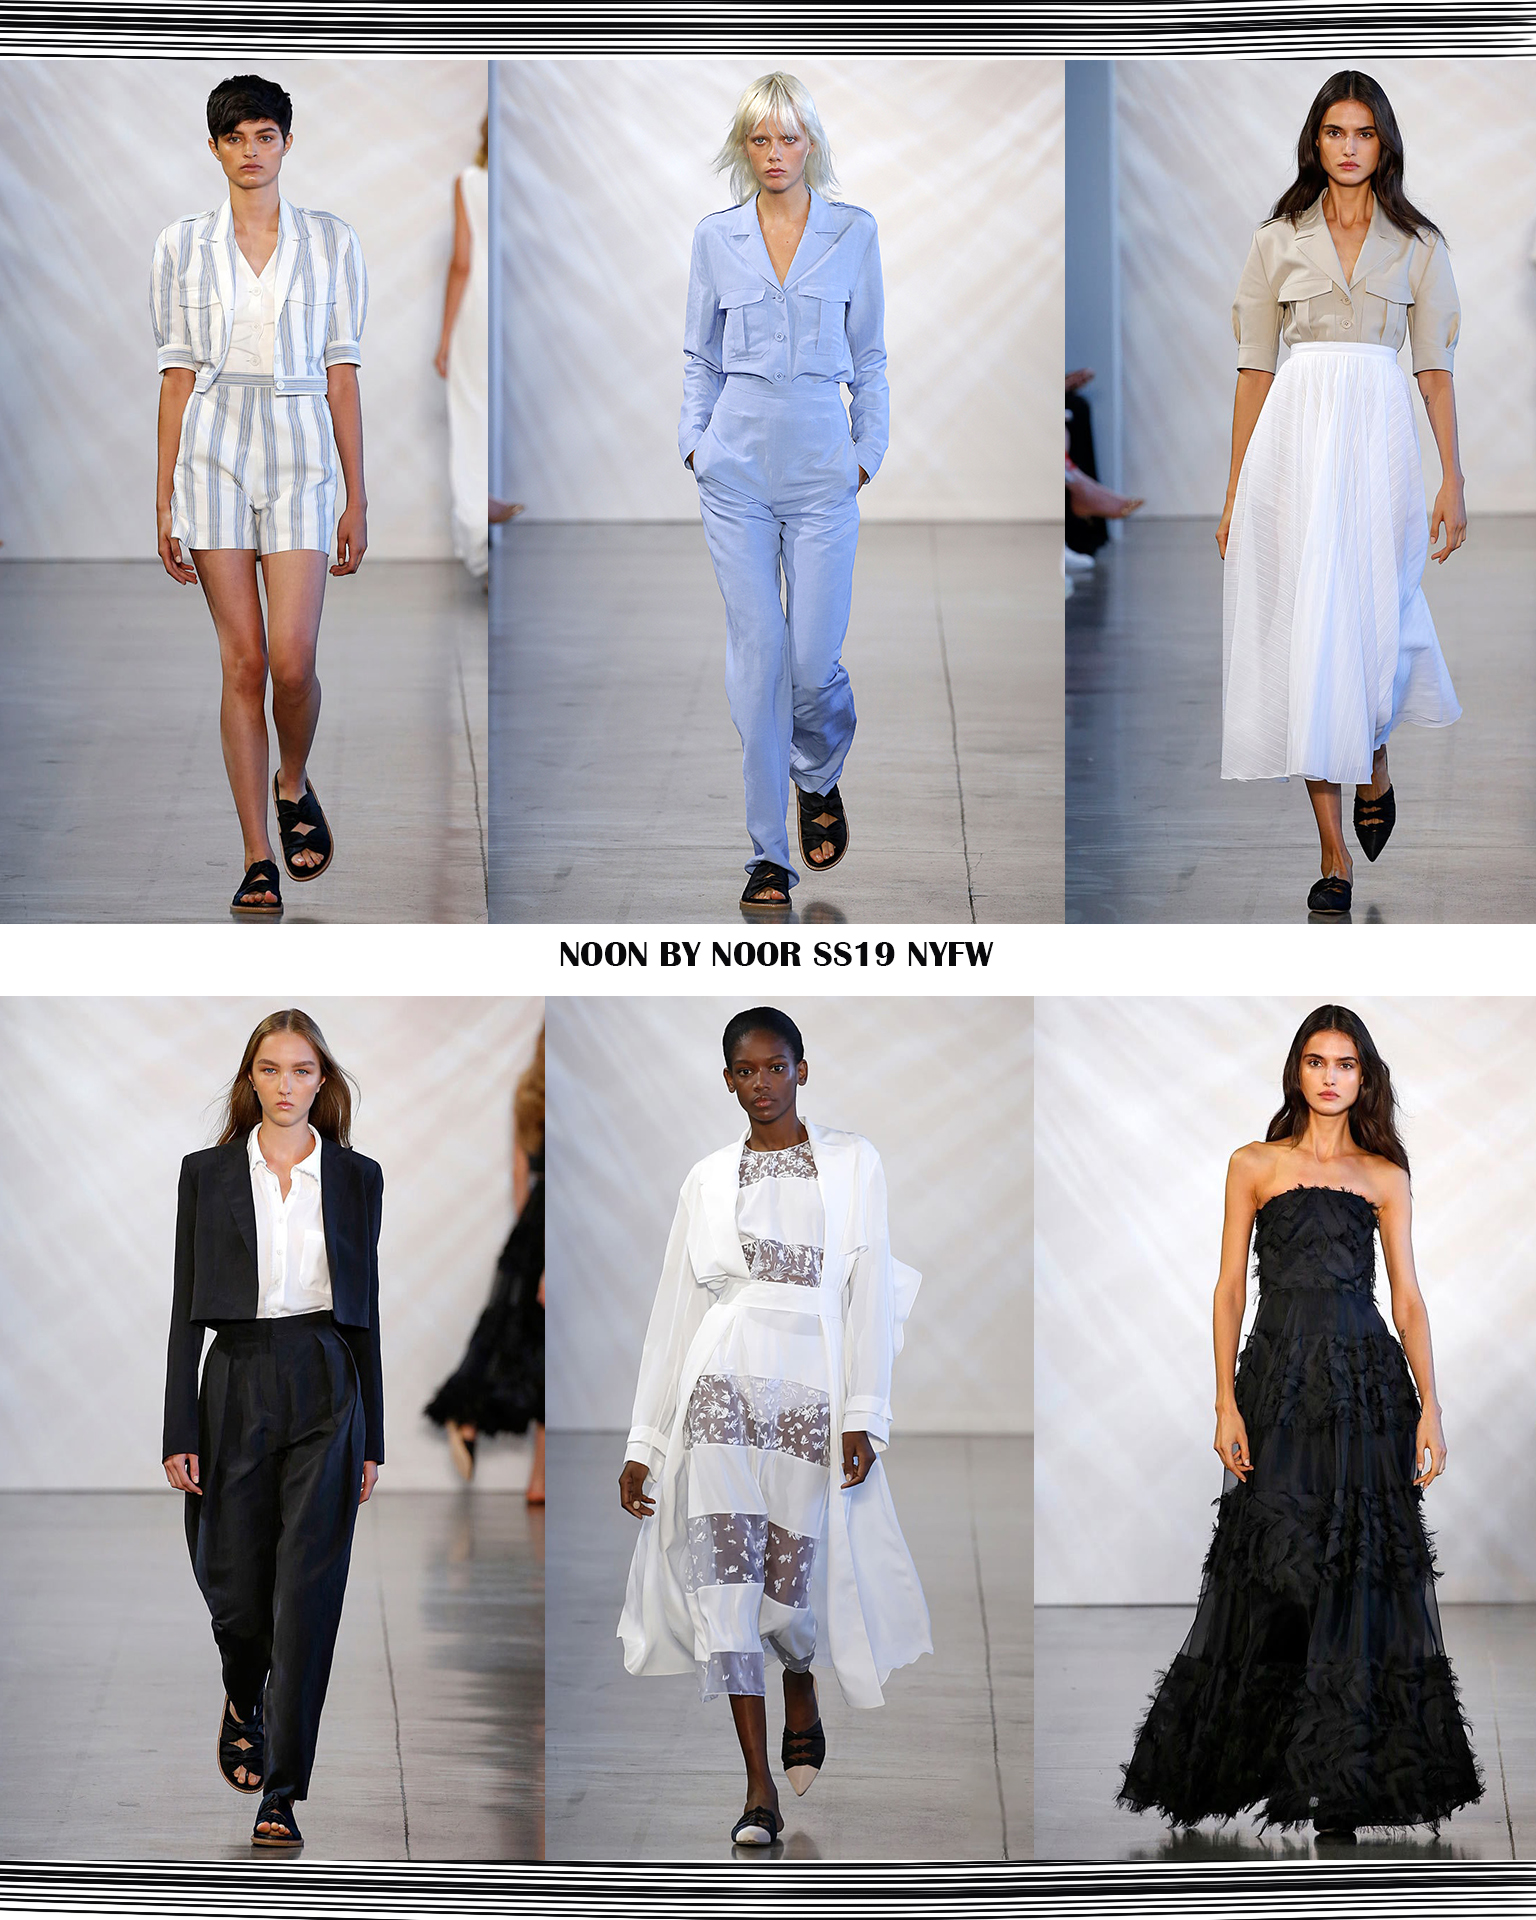 Noon by Noor NYFW